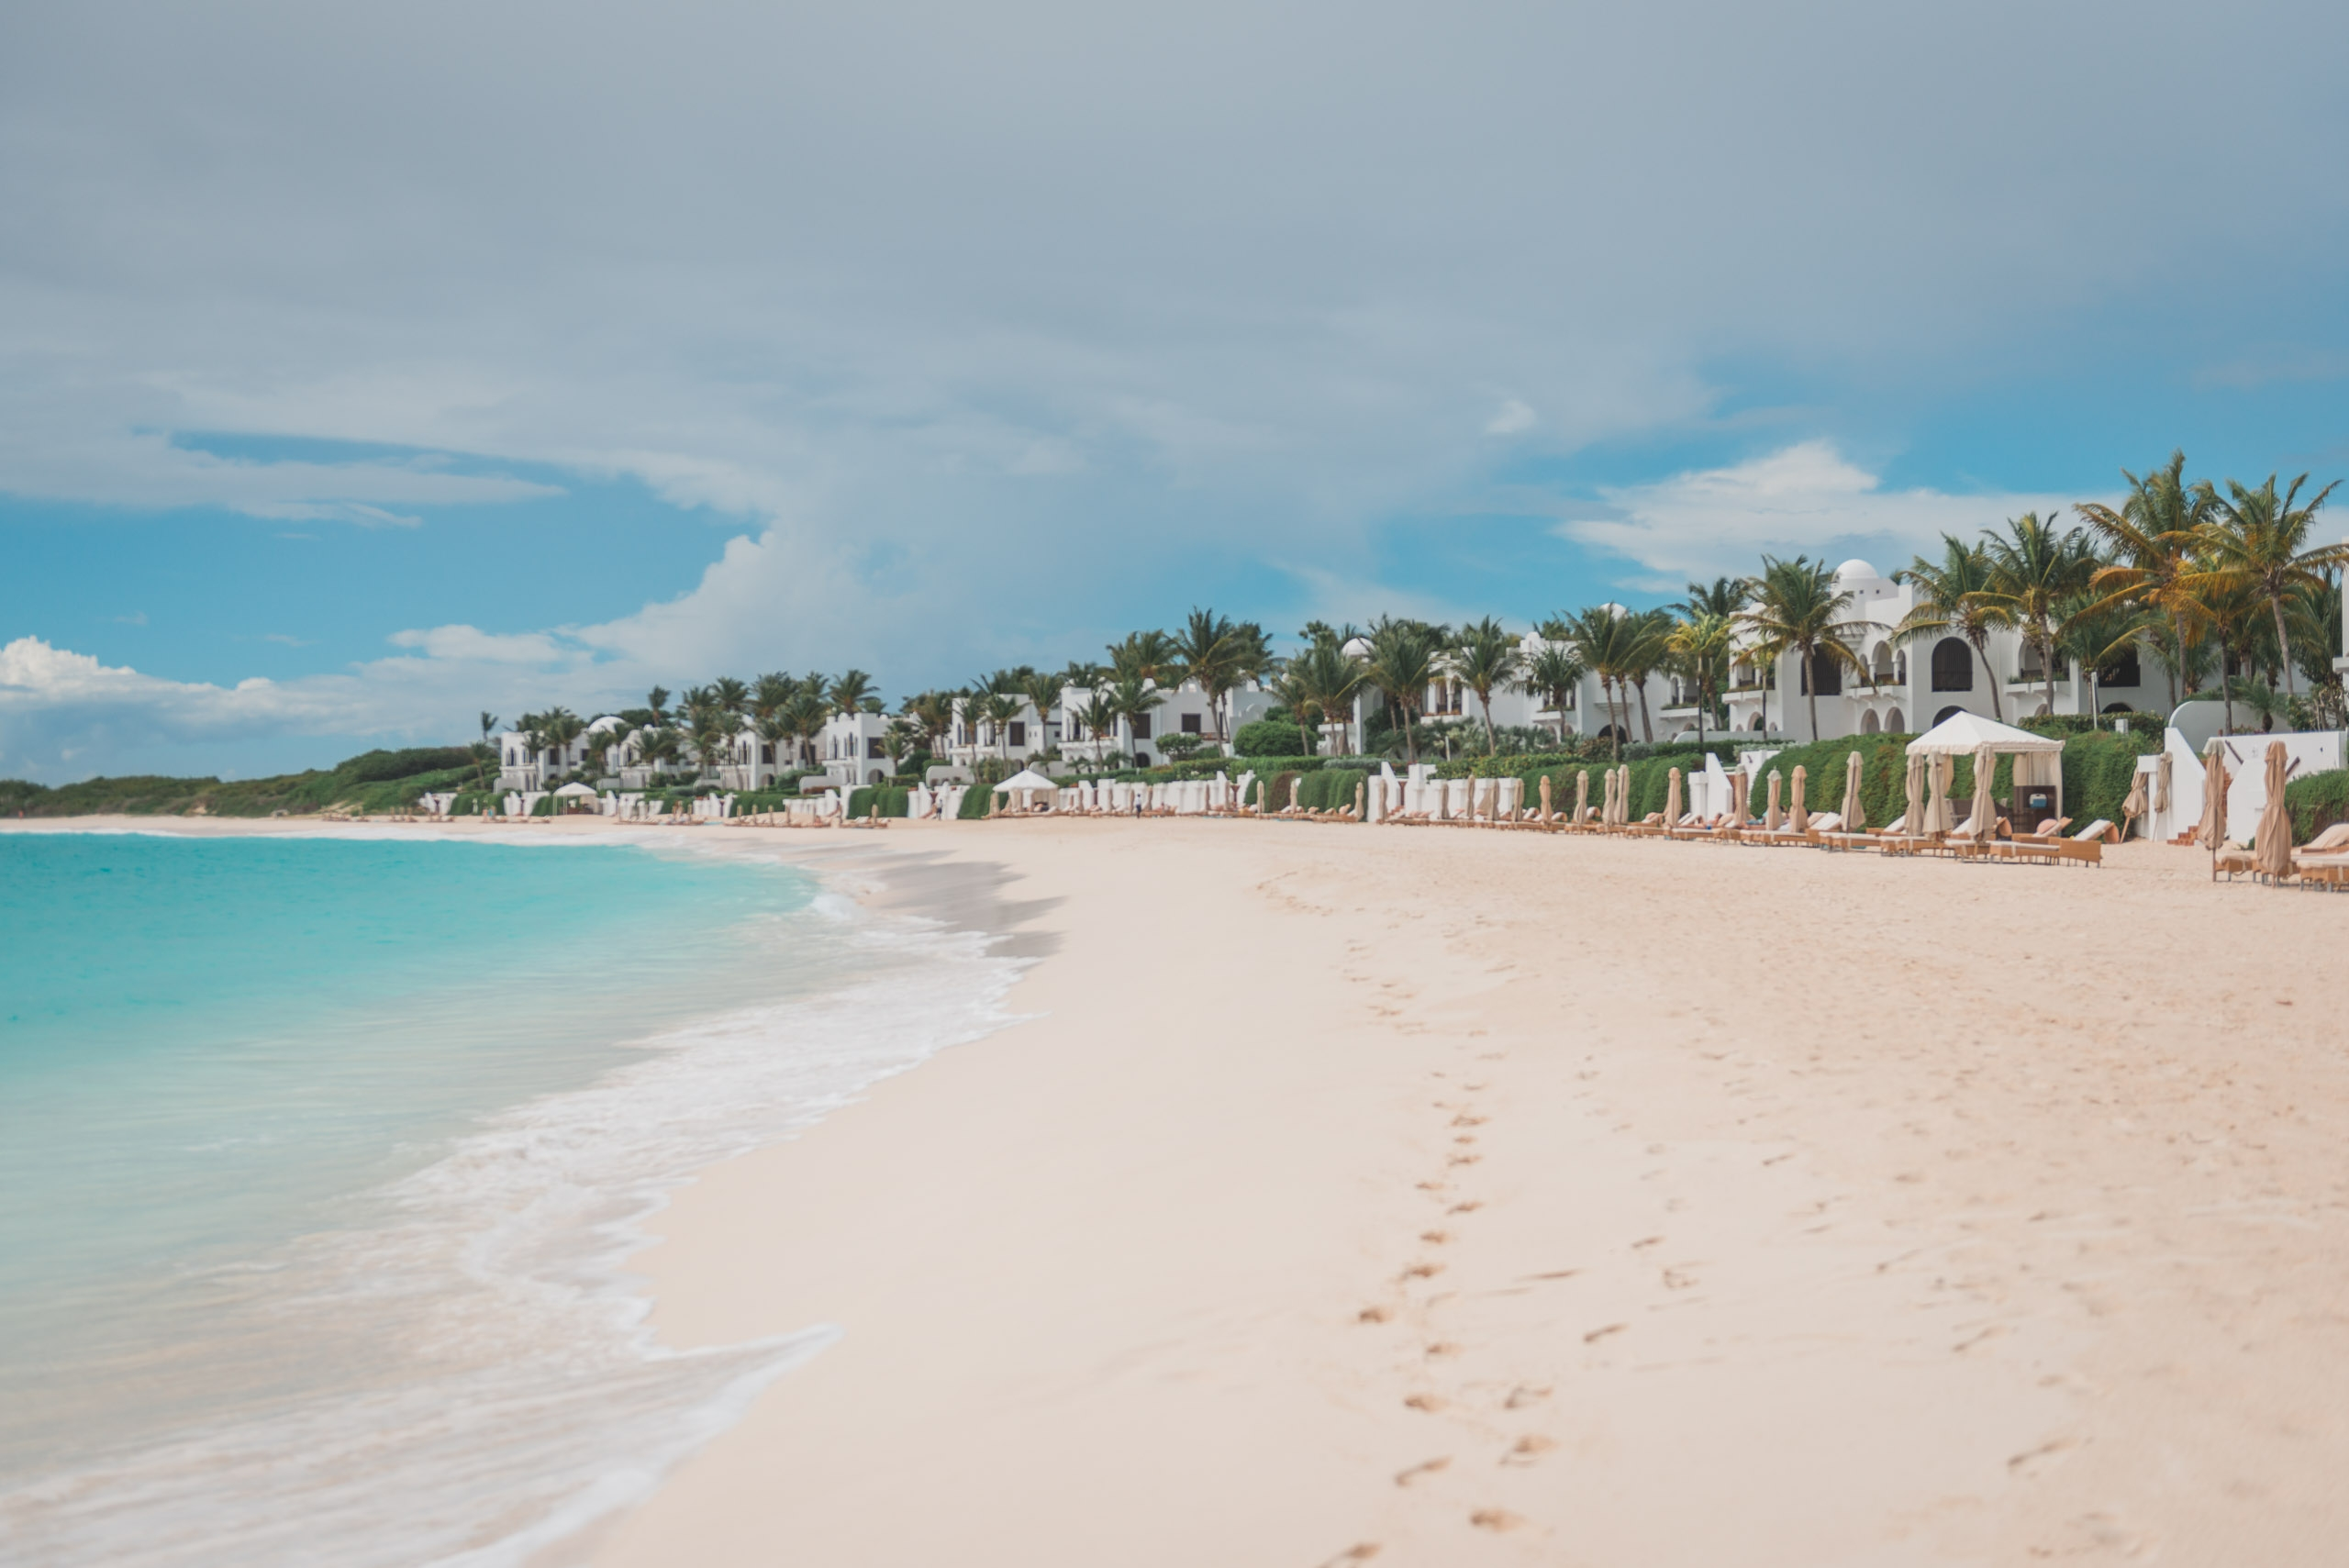 The Cap Juluca Resort in Anguilla